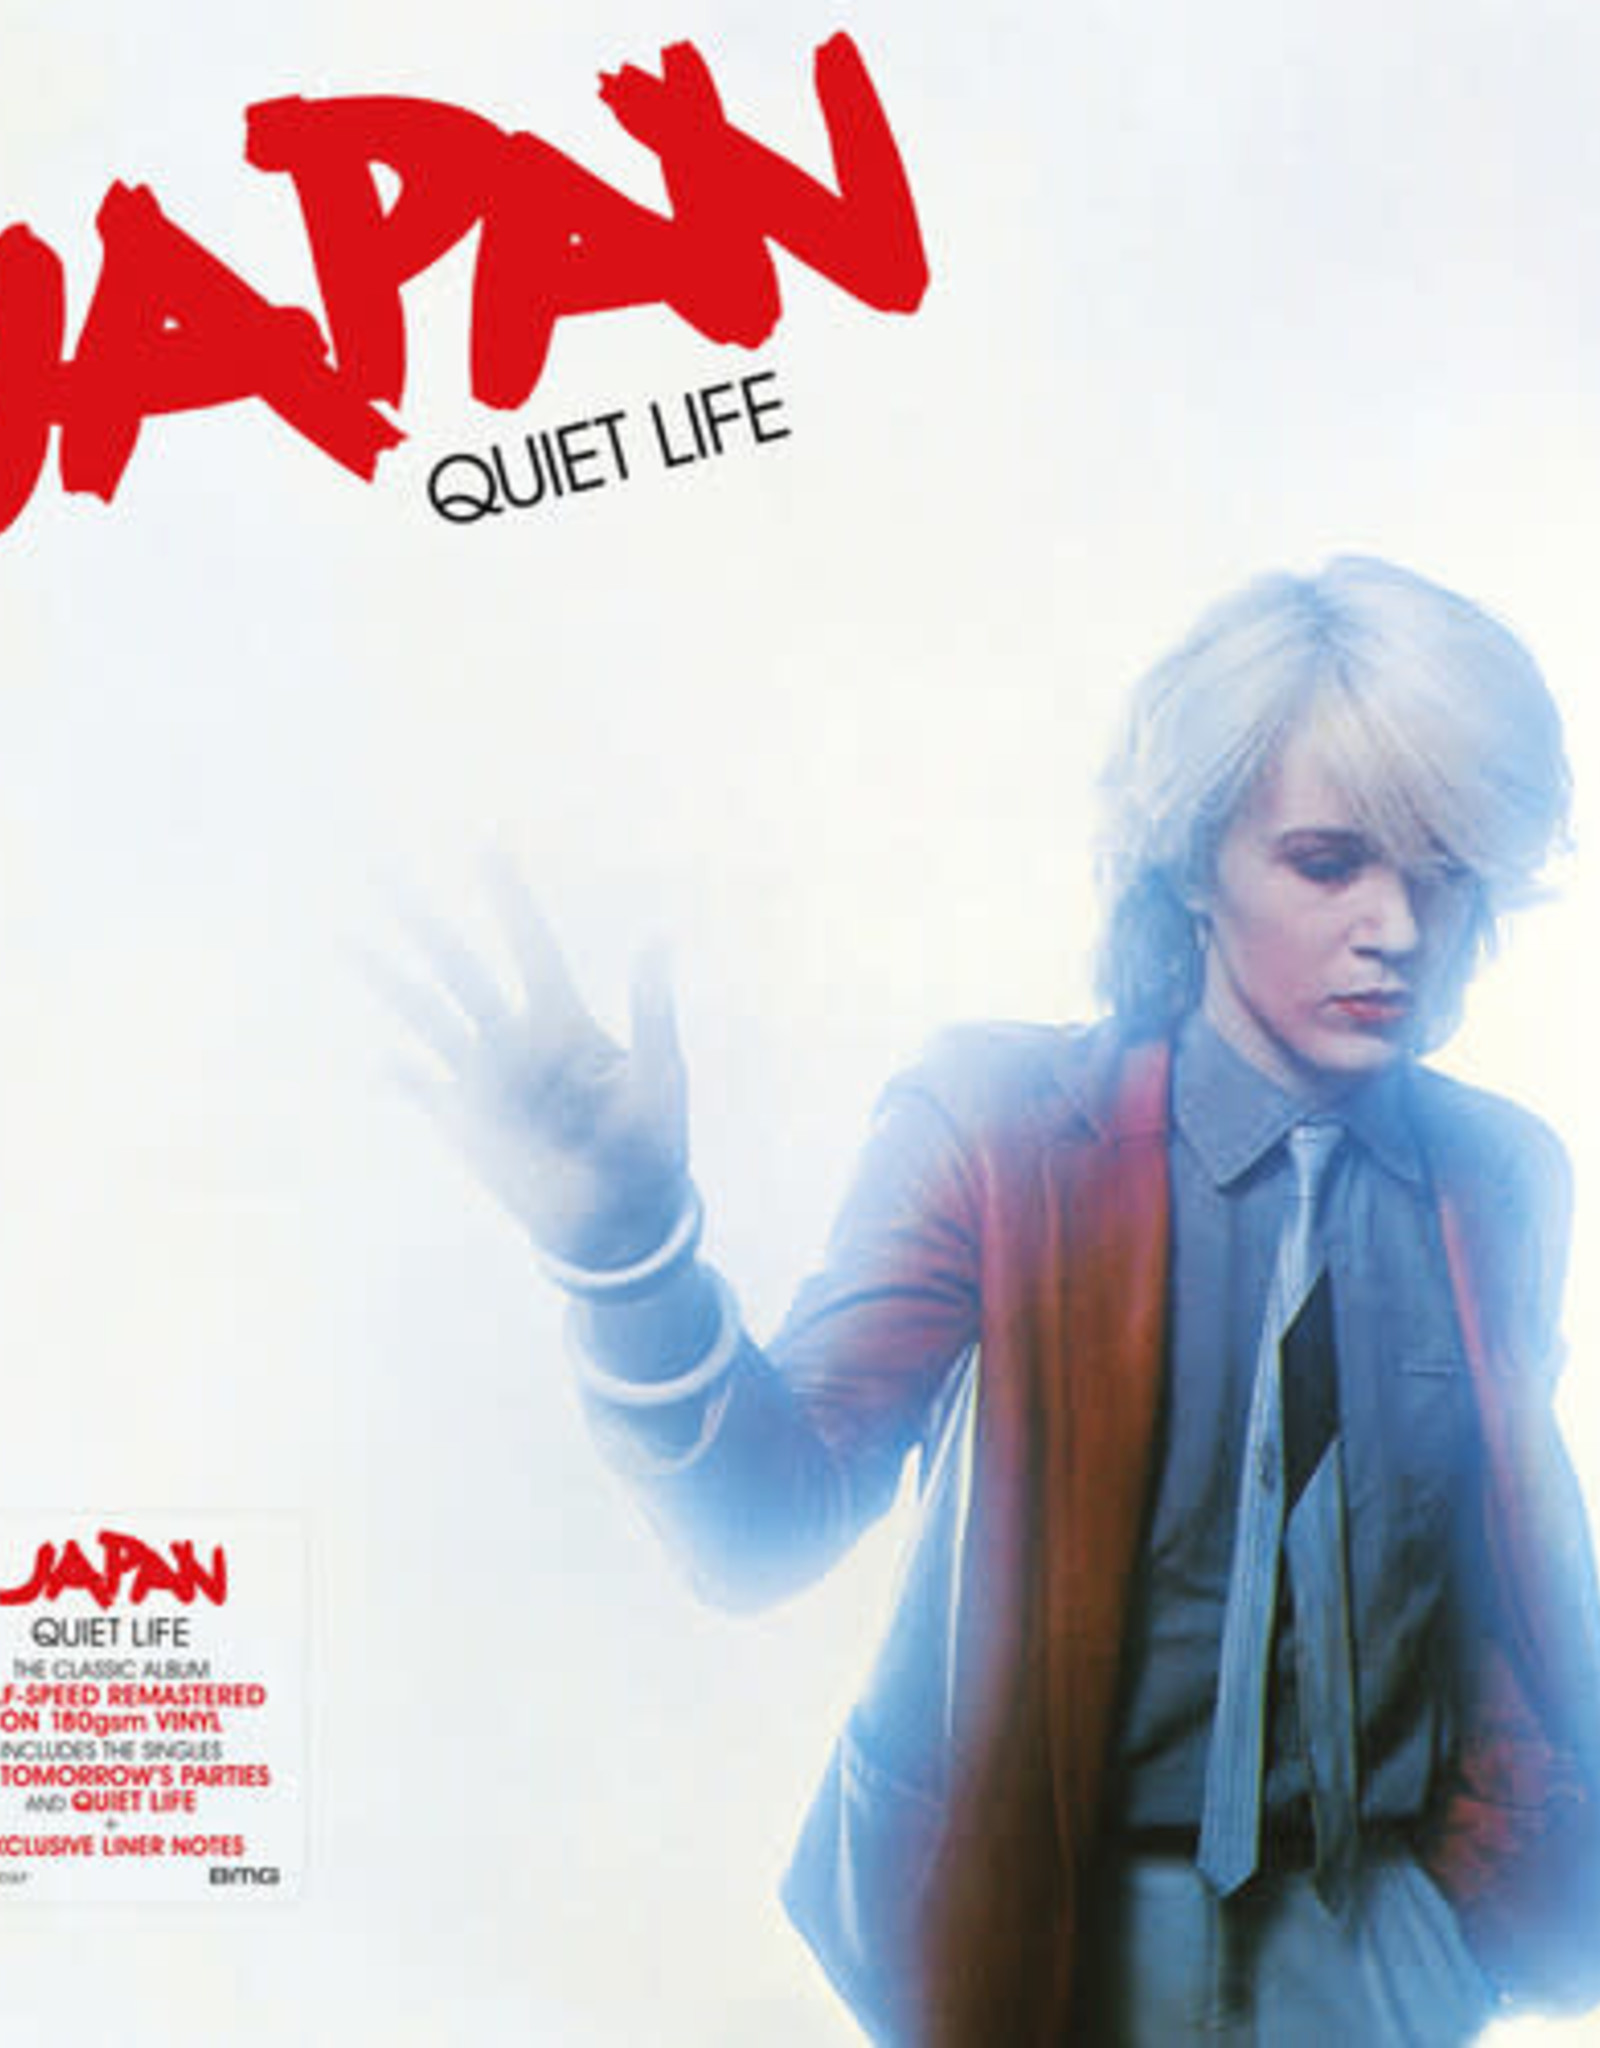 Japan - Quiet Life (Limited Edition, Red Vinyl)